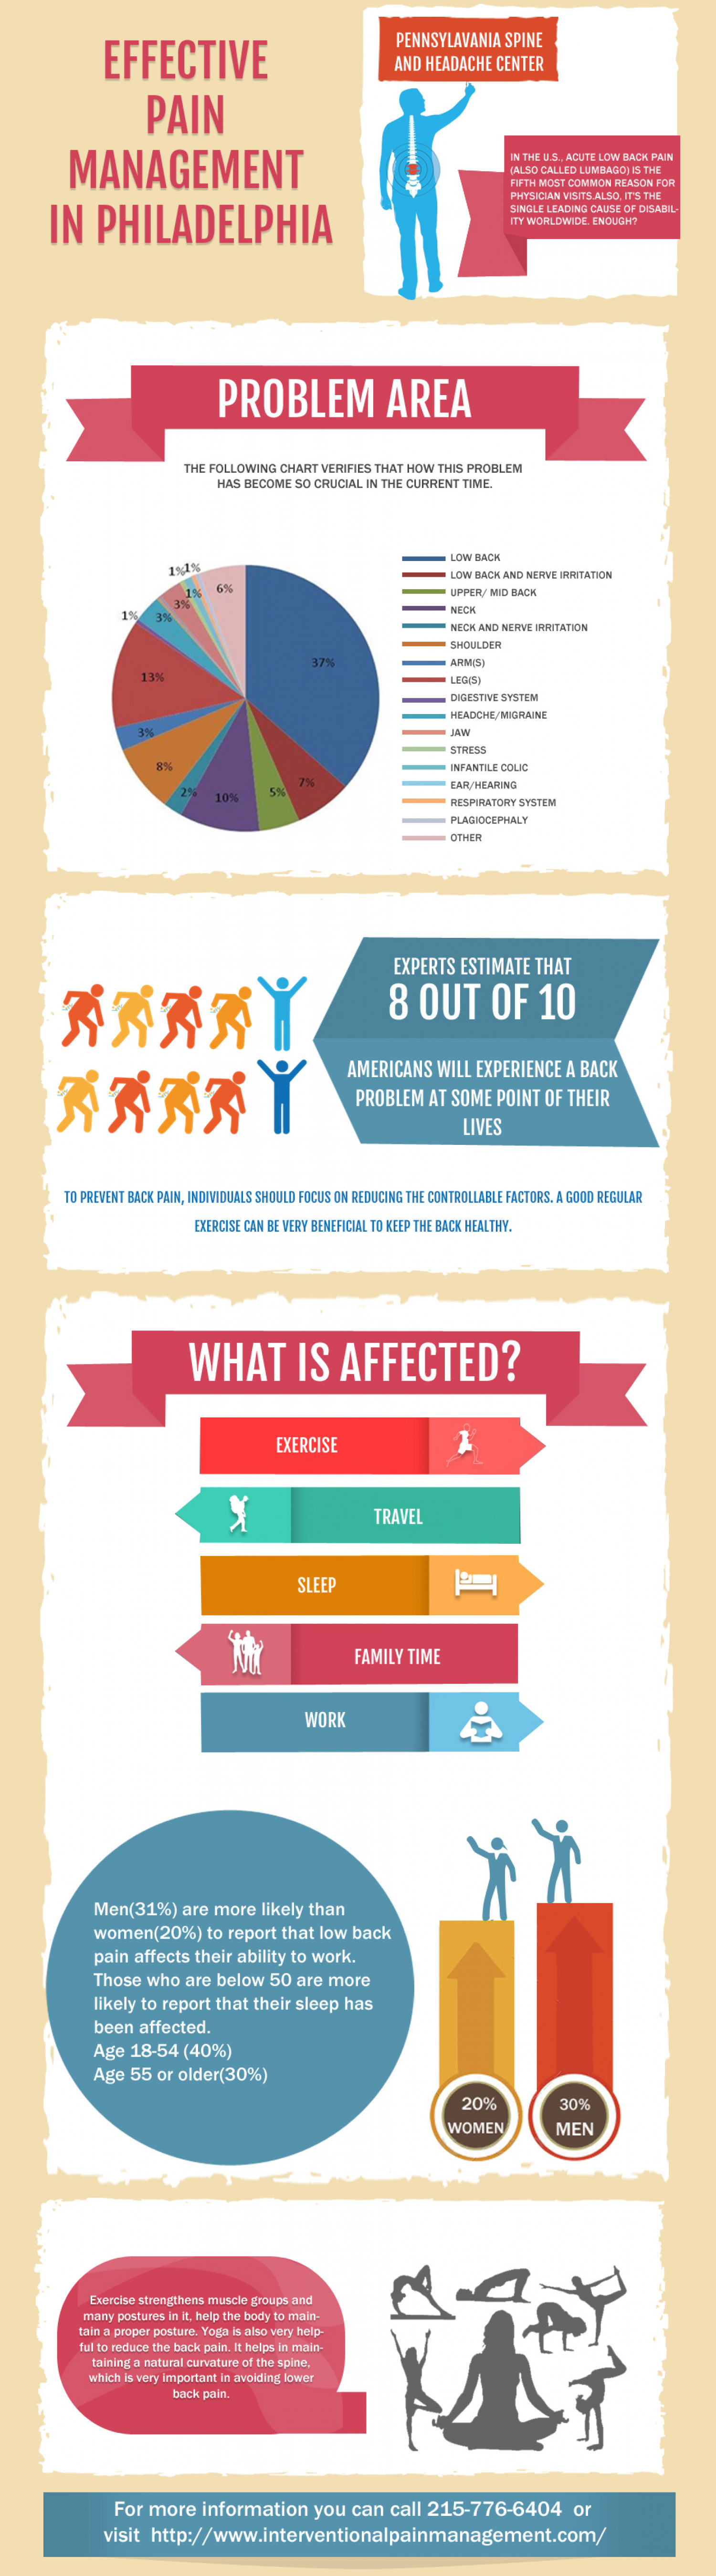 Pennsylvania Spine and Headache Center Infographic